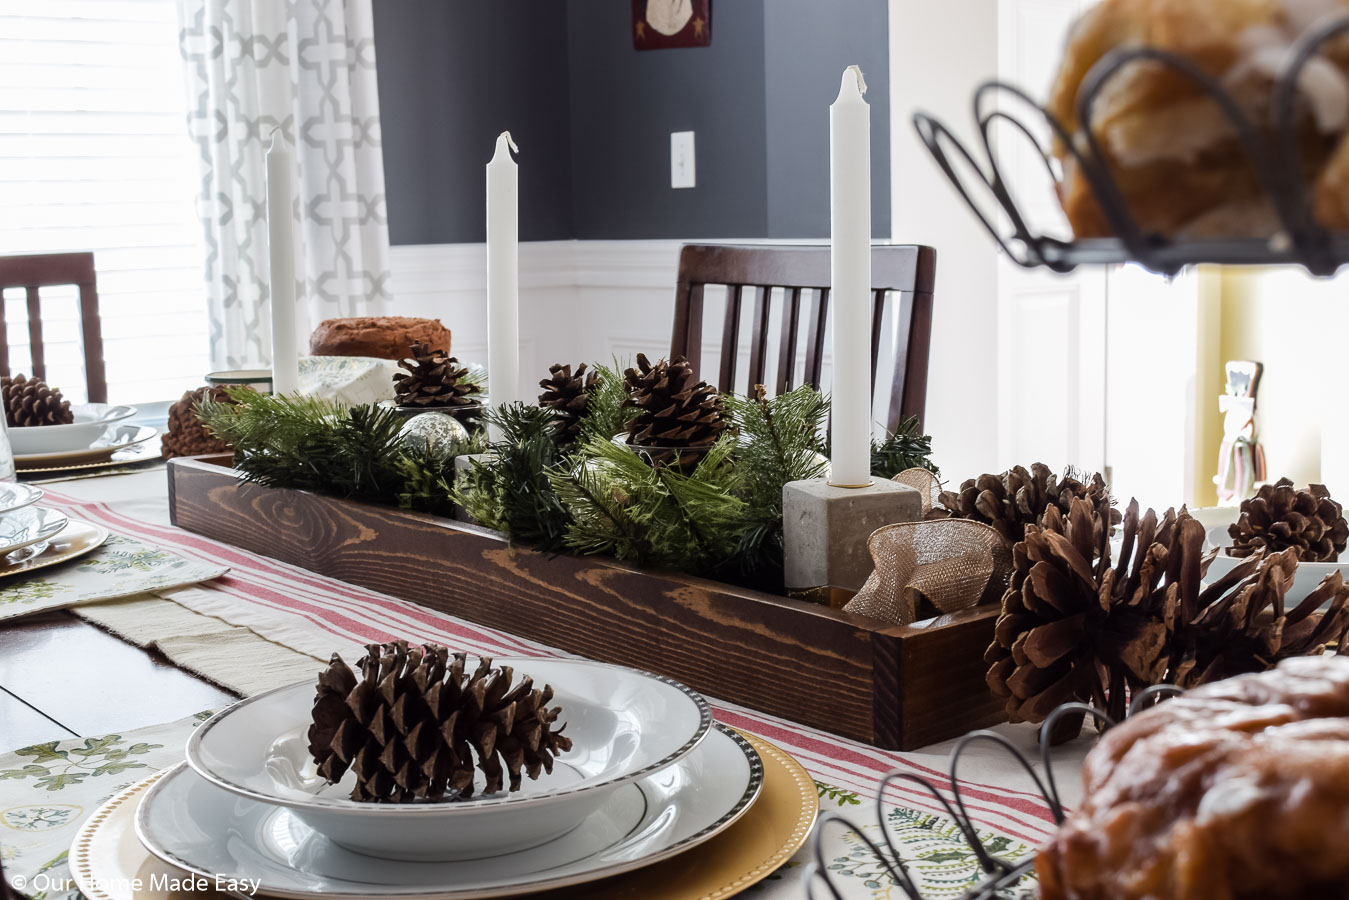 This simple DIY wood tray is perfect for centerpieces. We made a Christmas centerpiece with pinecones and faux fir branches